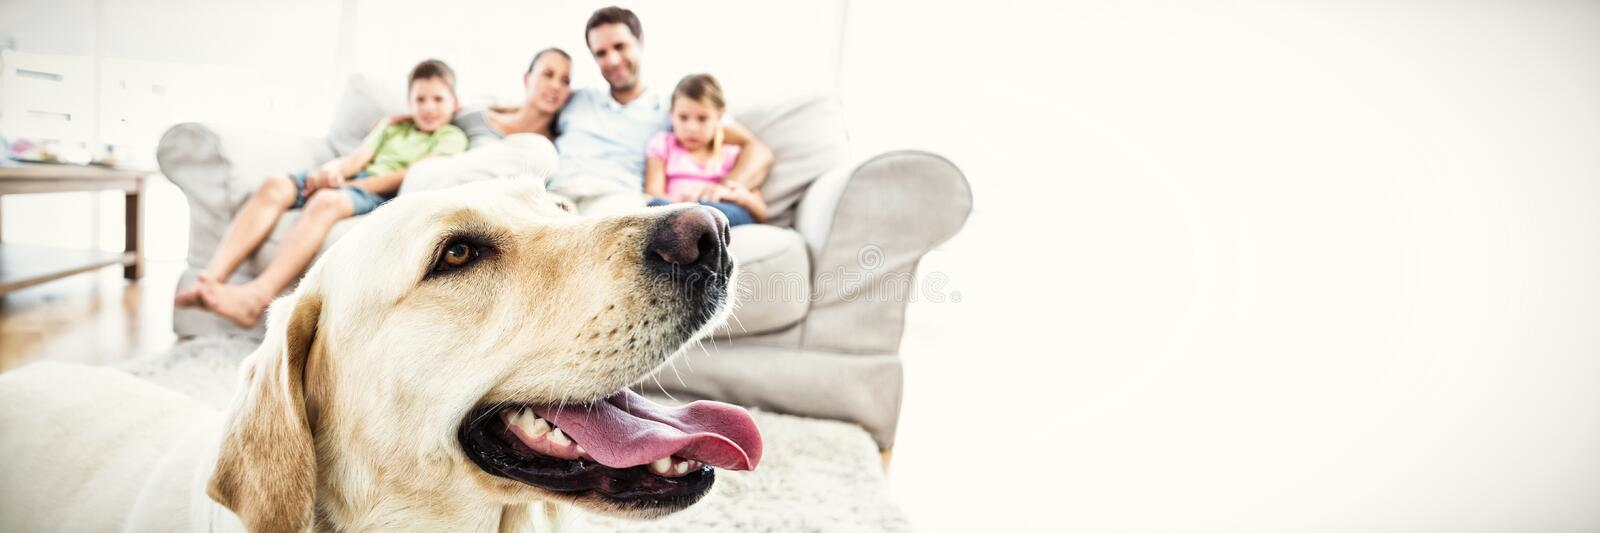 Happy family sitting on couch with their pet yellow labrador in foreground stock photos